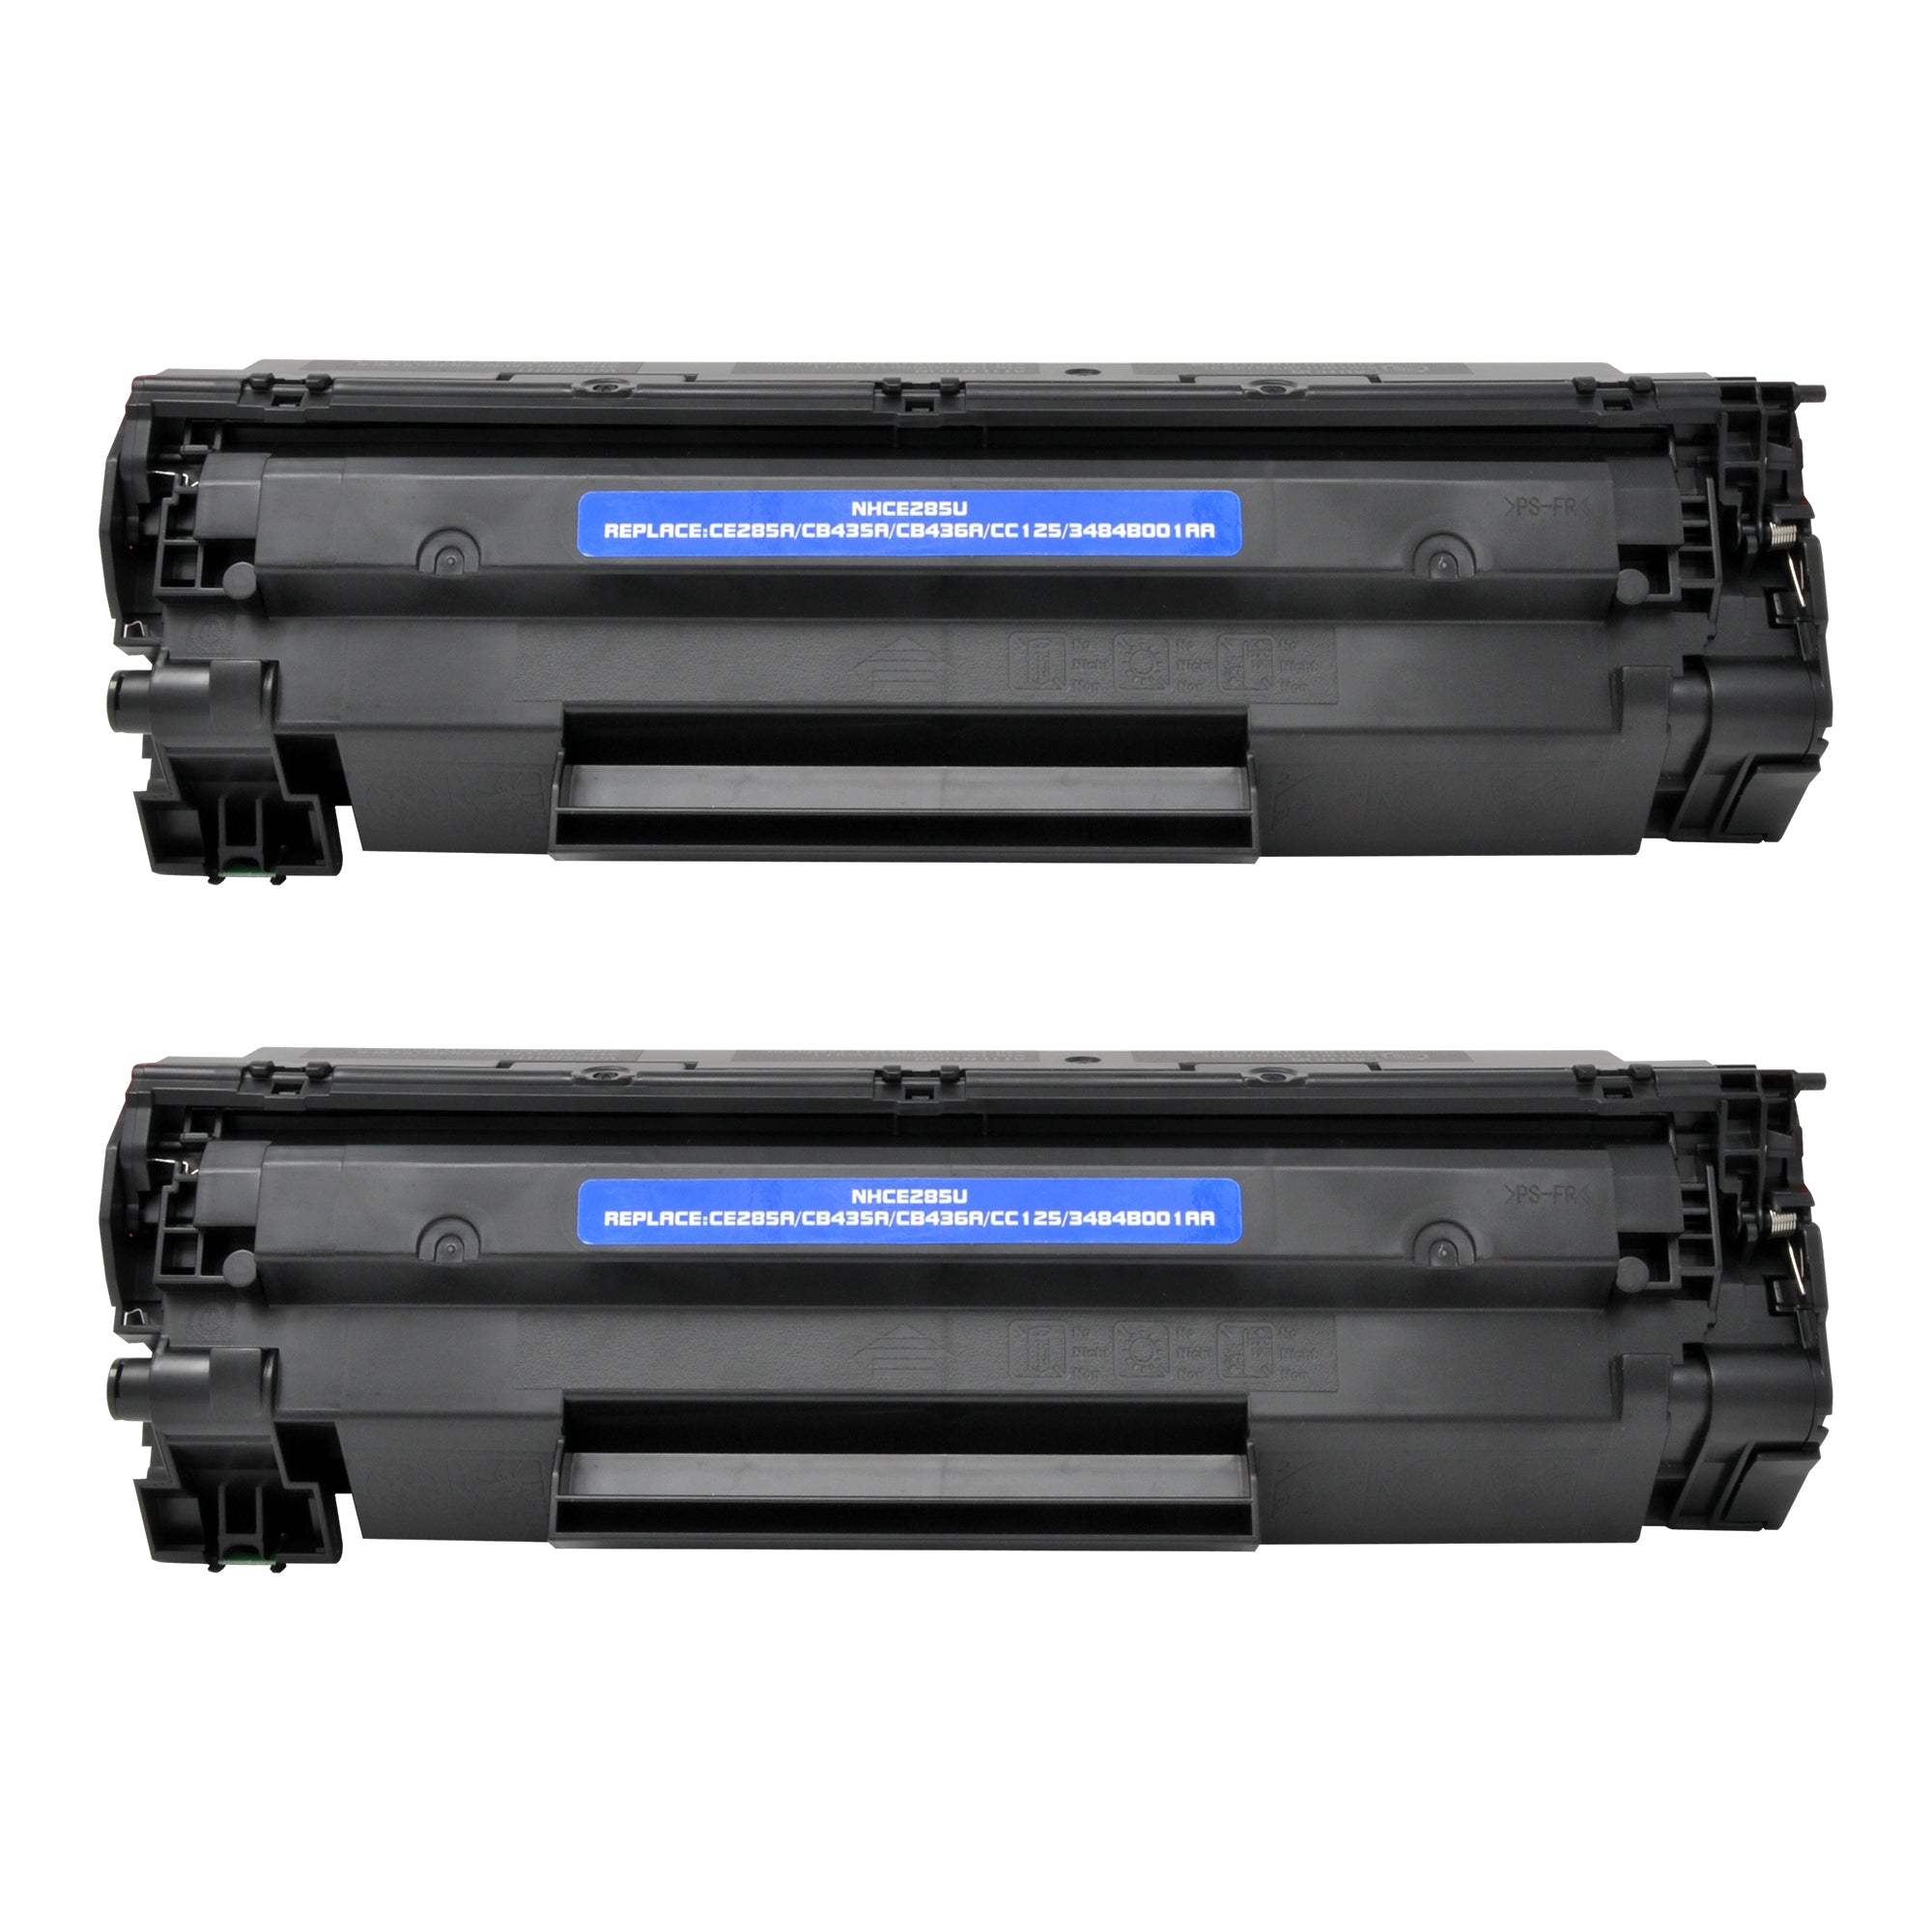 Arthur Imaging Compatible Toner Cartridge Replacement for Canon 125, 3484B001AA (Black, 2-Pack)